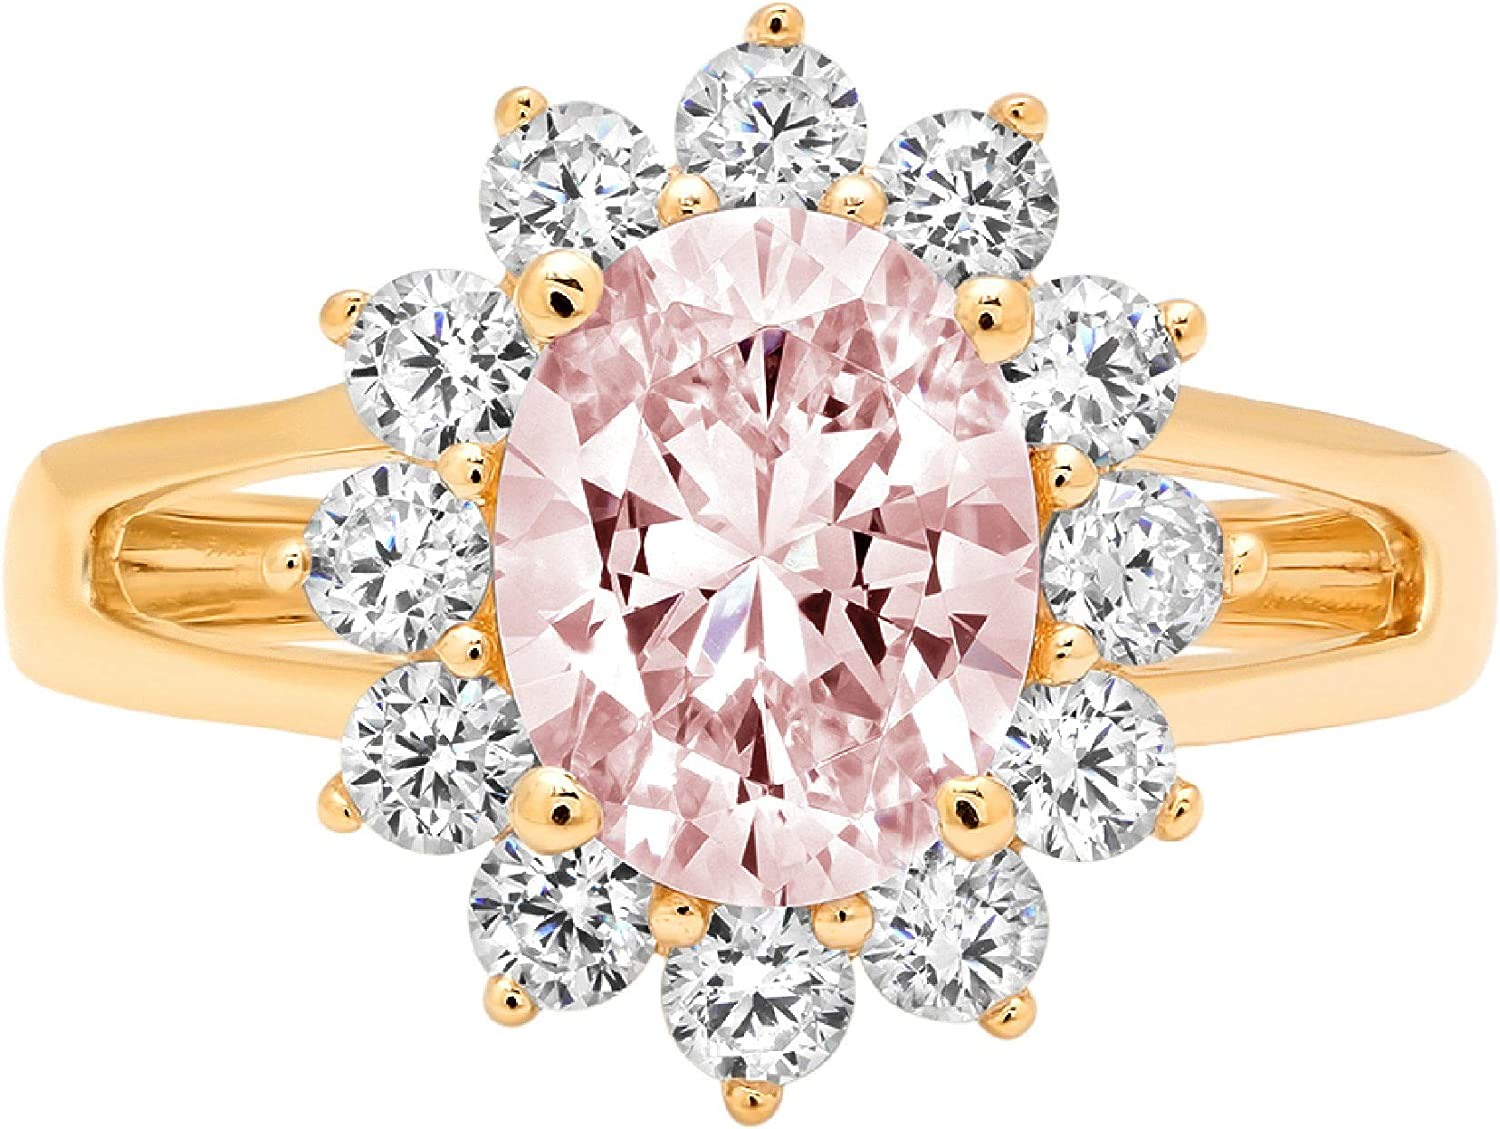 2.3ct Brilliant Max 51% OFF Max 66% OFF Oval Cut Solitaire with Pink Halo Accent V Ideal